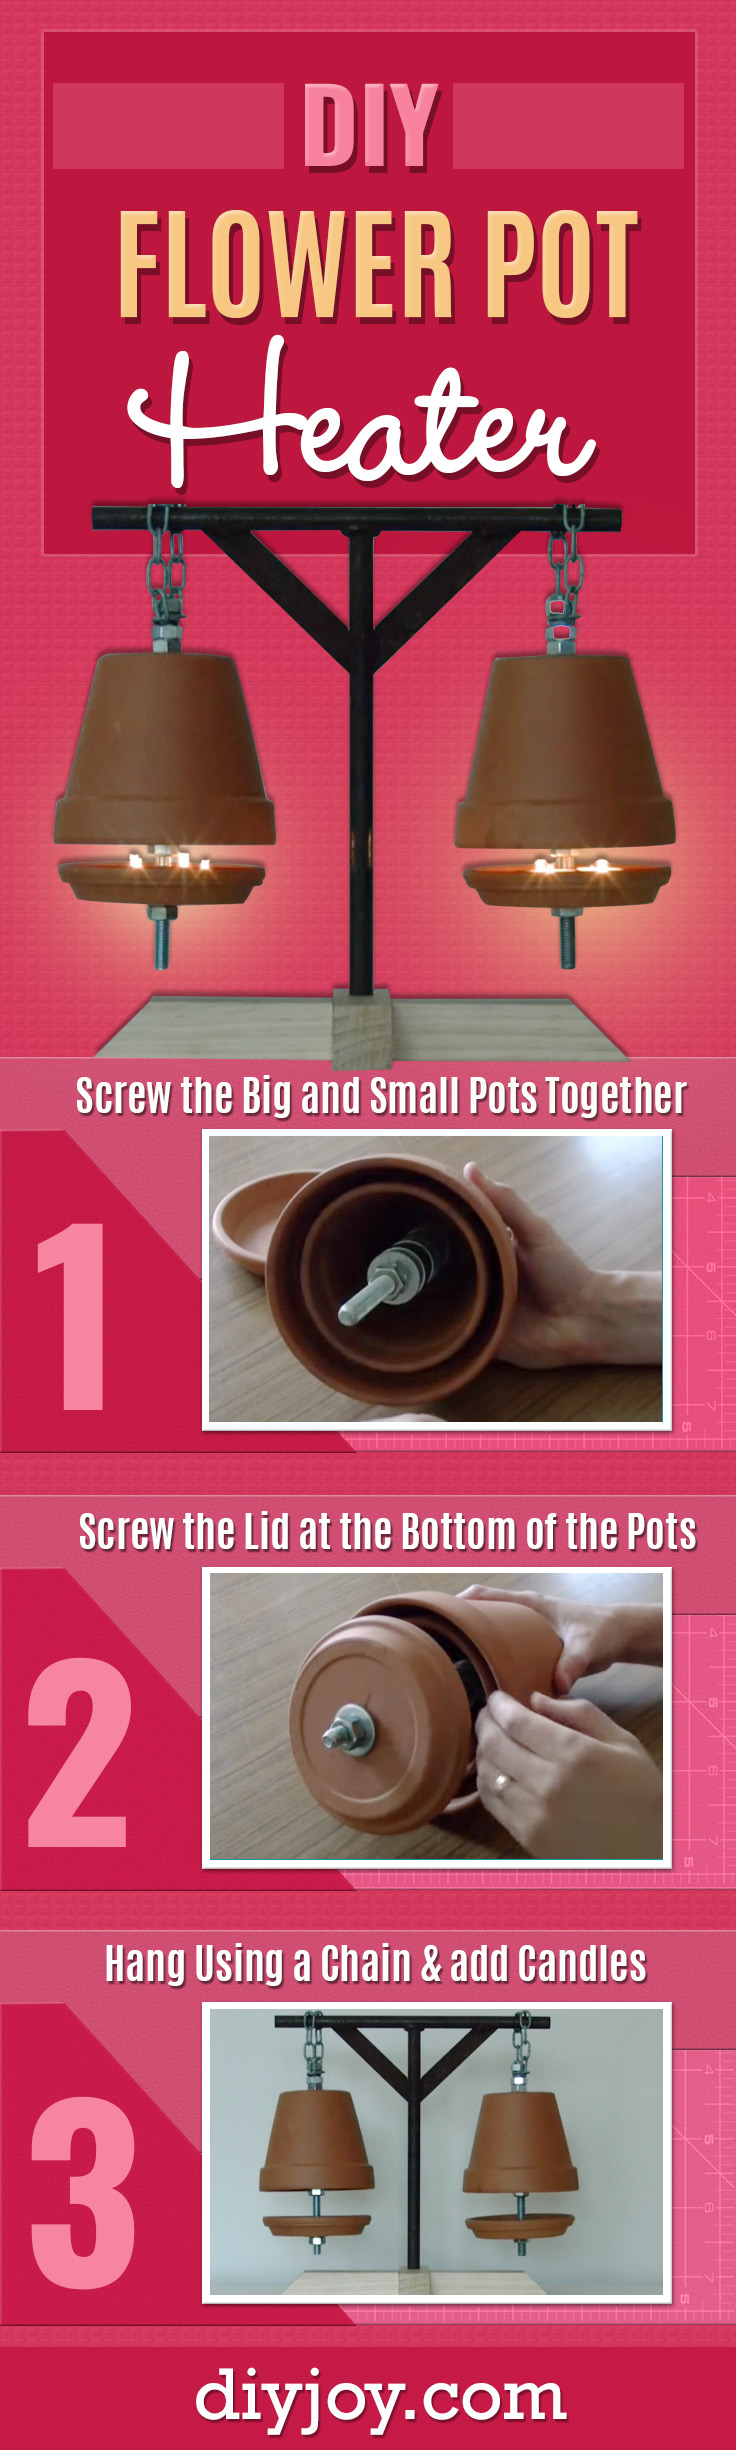 DIY Joy & Heat the Home For 4 Cents An Hour With This DIY Idea